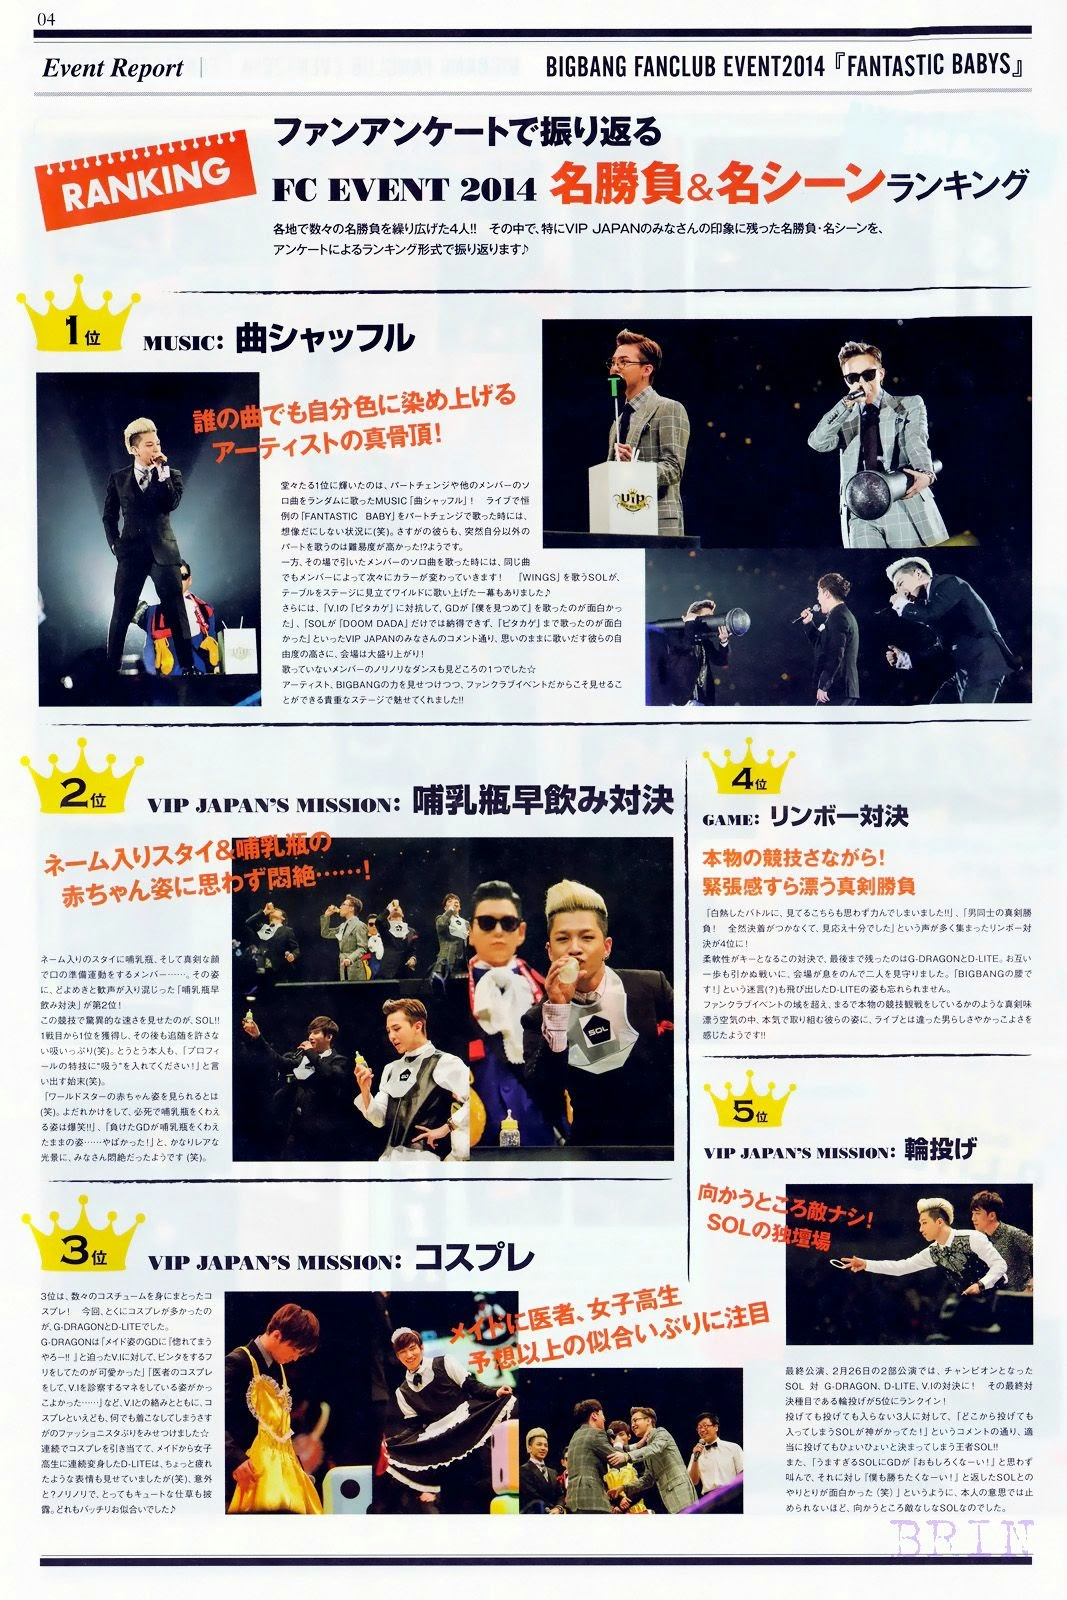 Scans: Big Bang Times Volume 09 [PHOTOS]  Scans: Big Bang Times Volume 09 [PHOTOS]  Scans: Big Bang Times Volume 09 [PHOTOS]  Scans: Big Bang Times Volume 09 [PHOTOS]